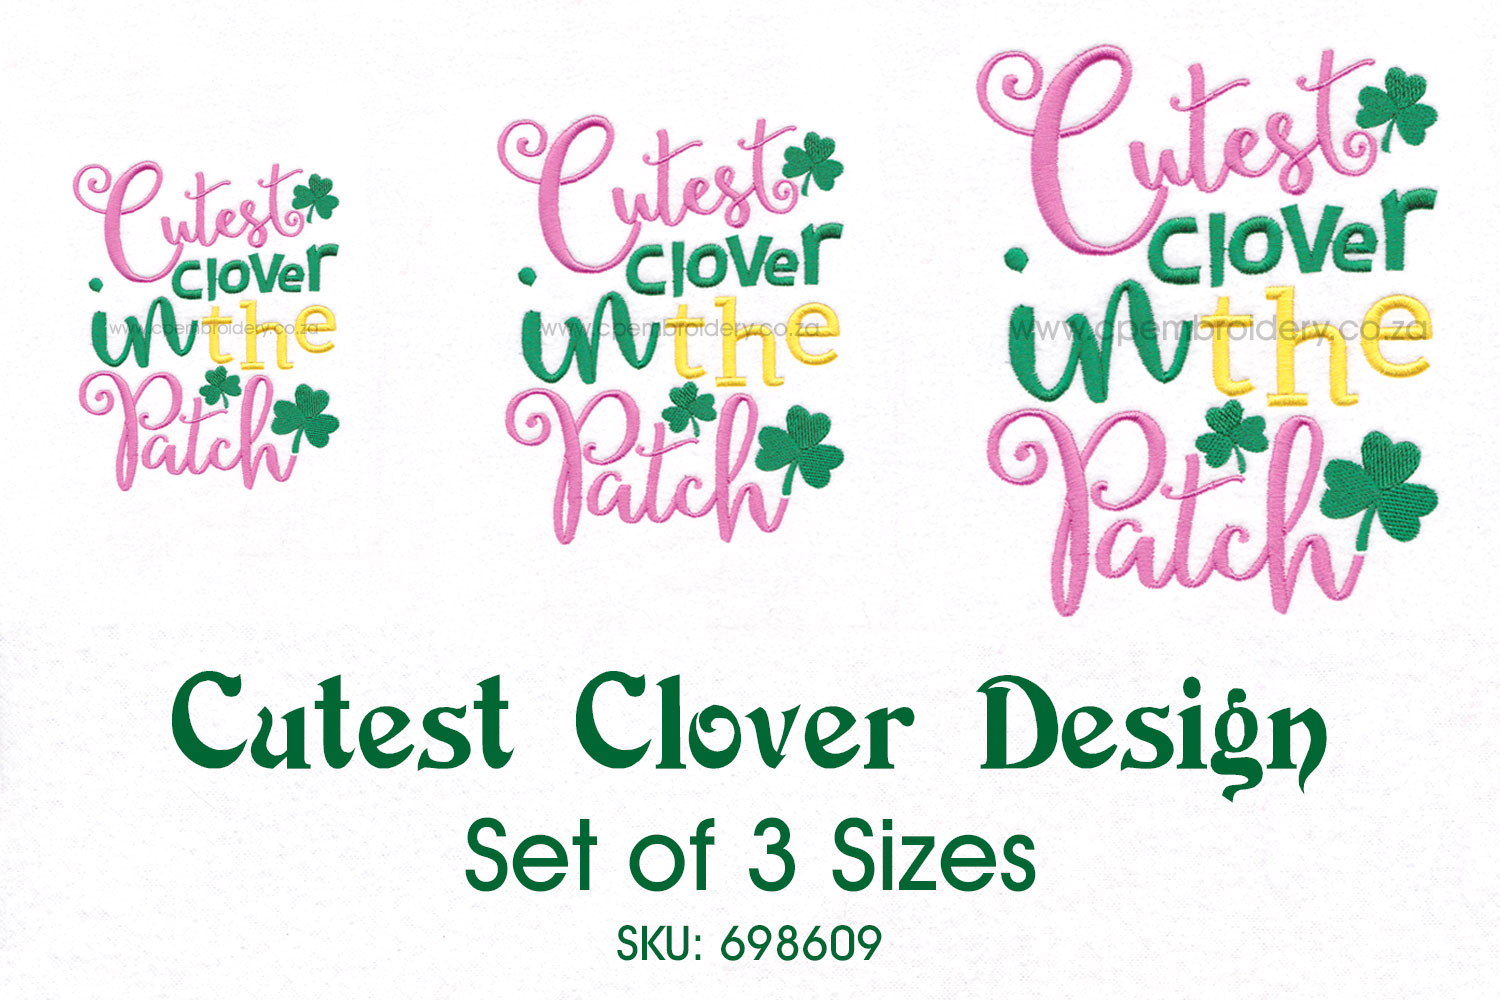 Cutest Clover in the Patch St Patrick's Day Design example image 2